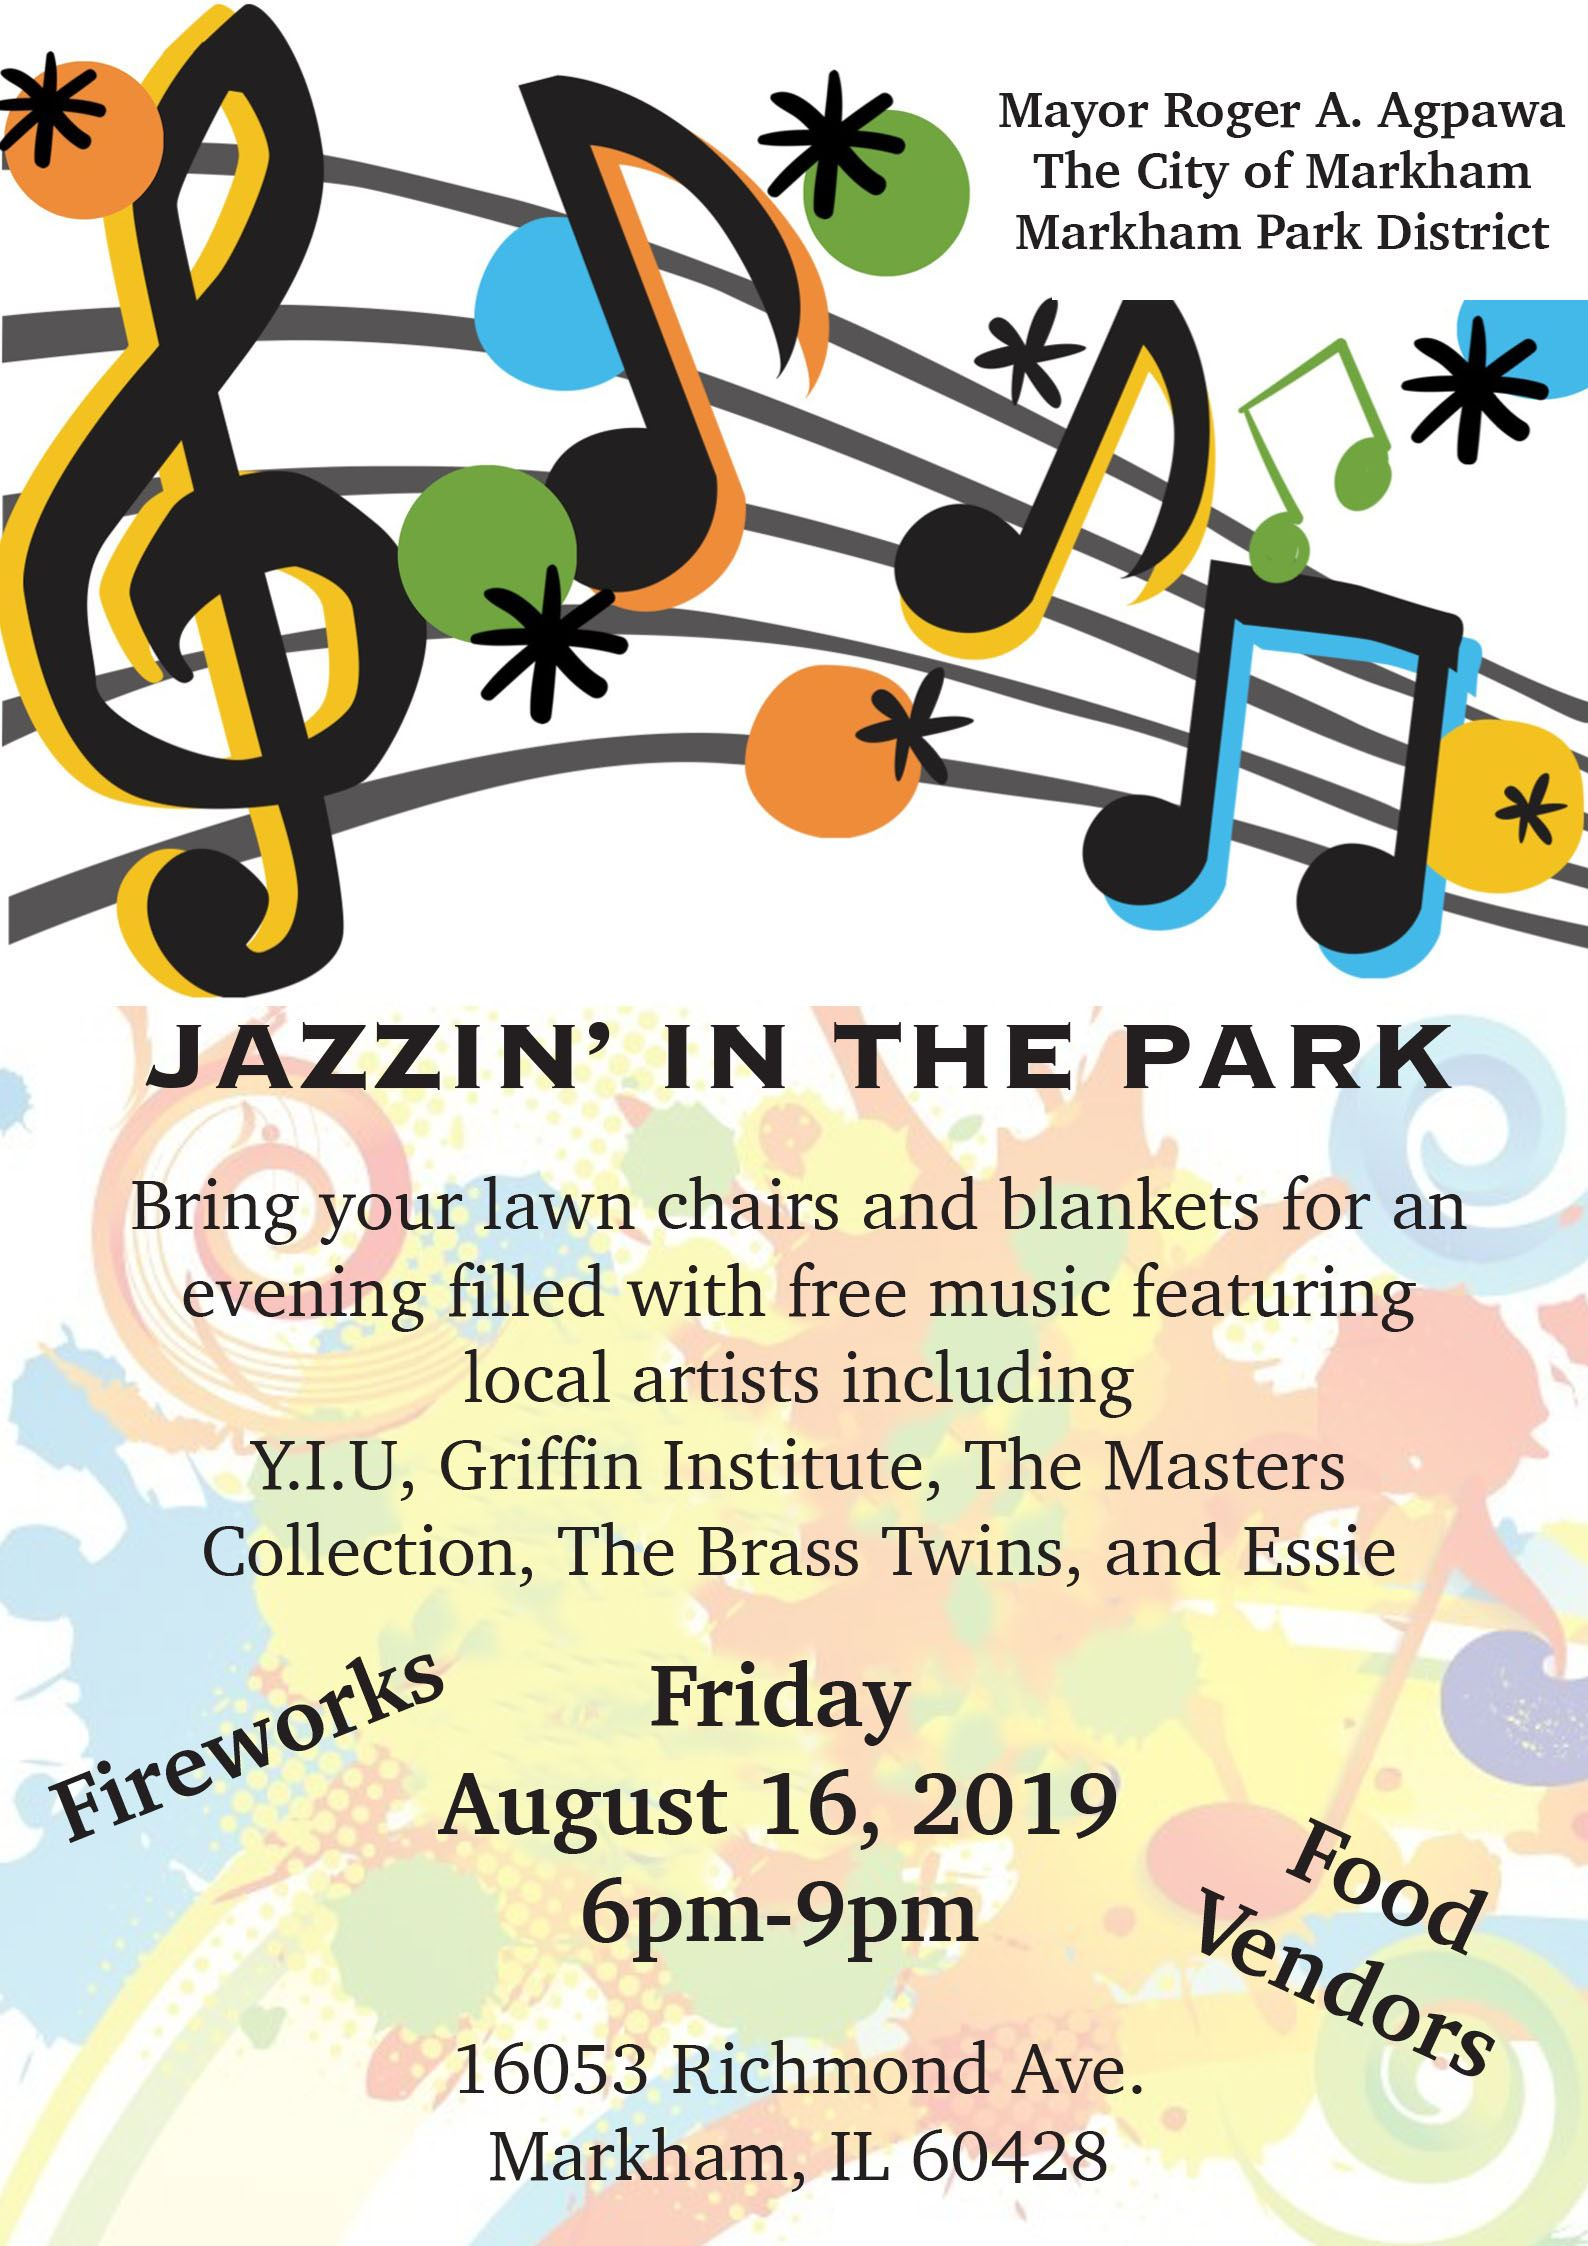 Jazzing in the Park Flyer